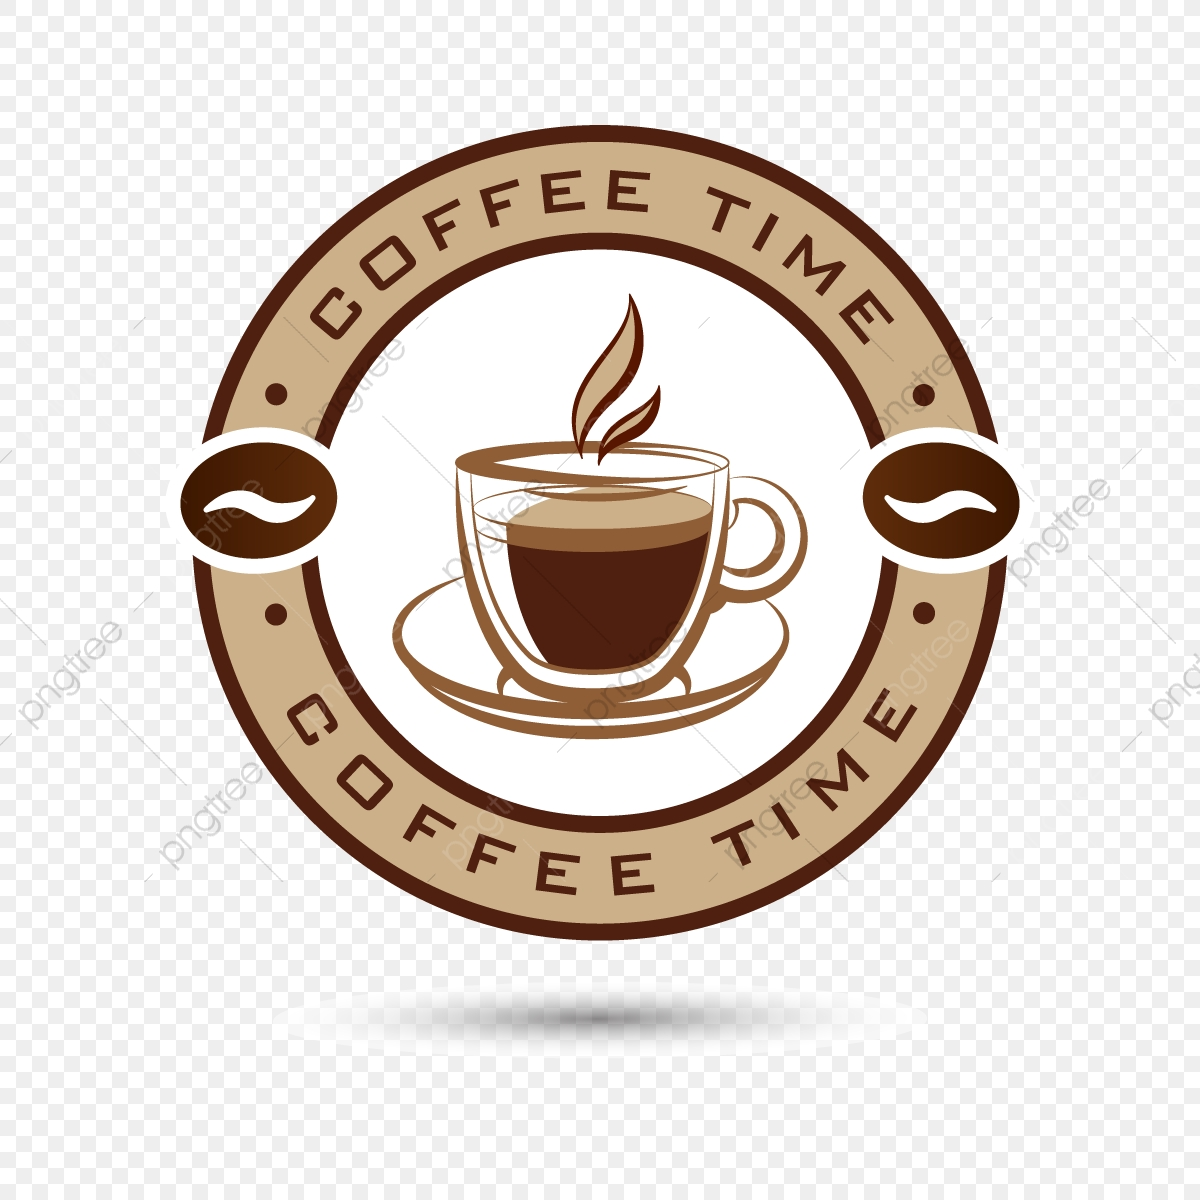 coffee png images vector and psd files free download on pngtree https pngtree com freepng coffee 3626459 html